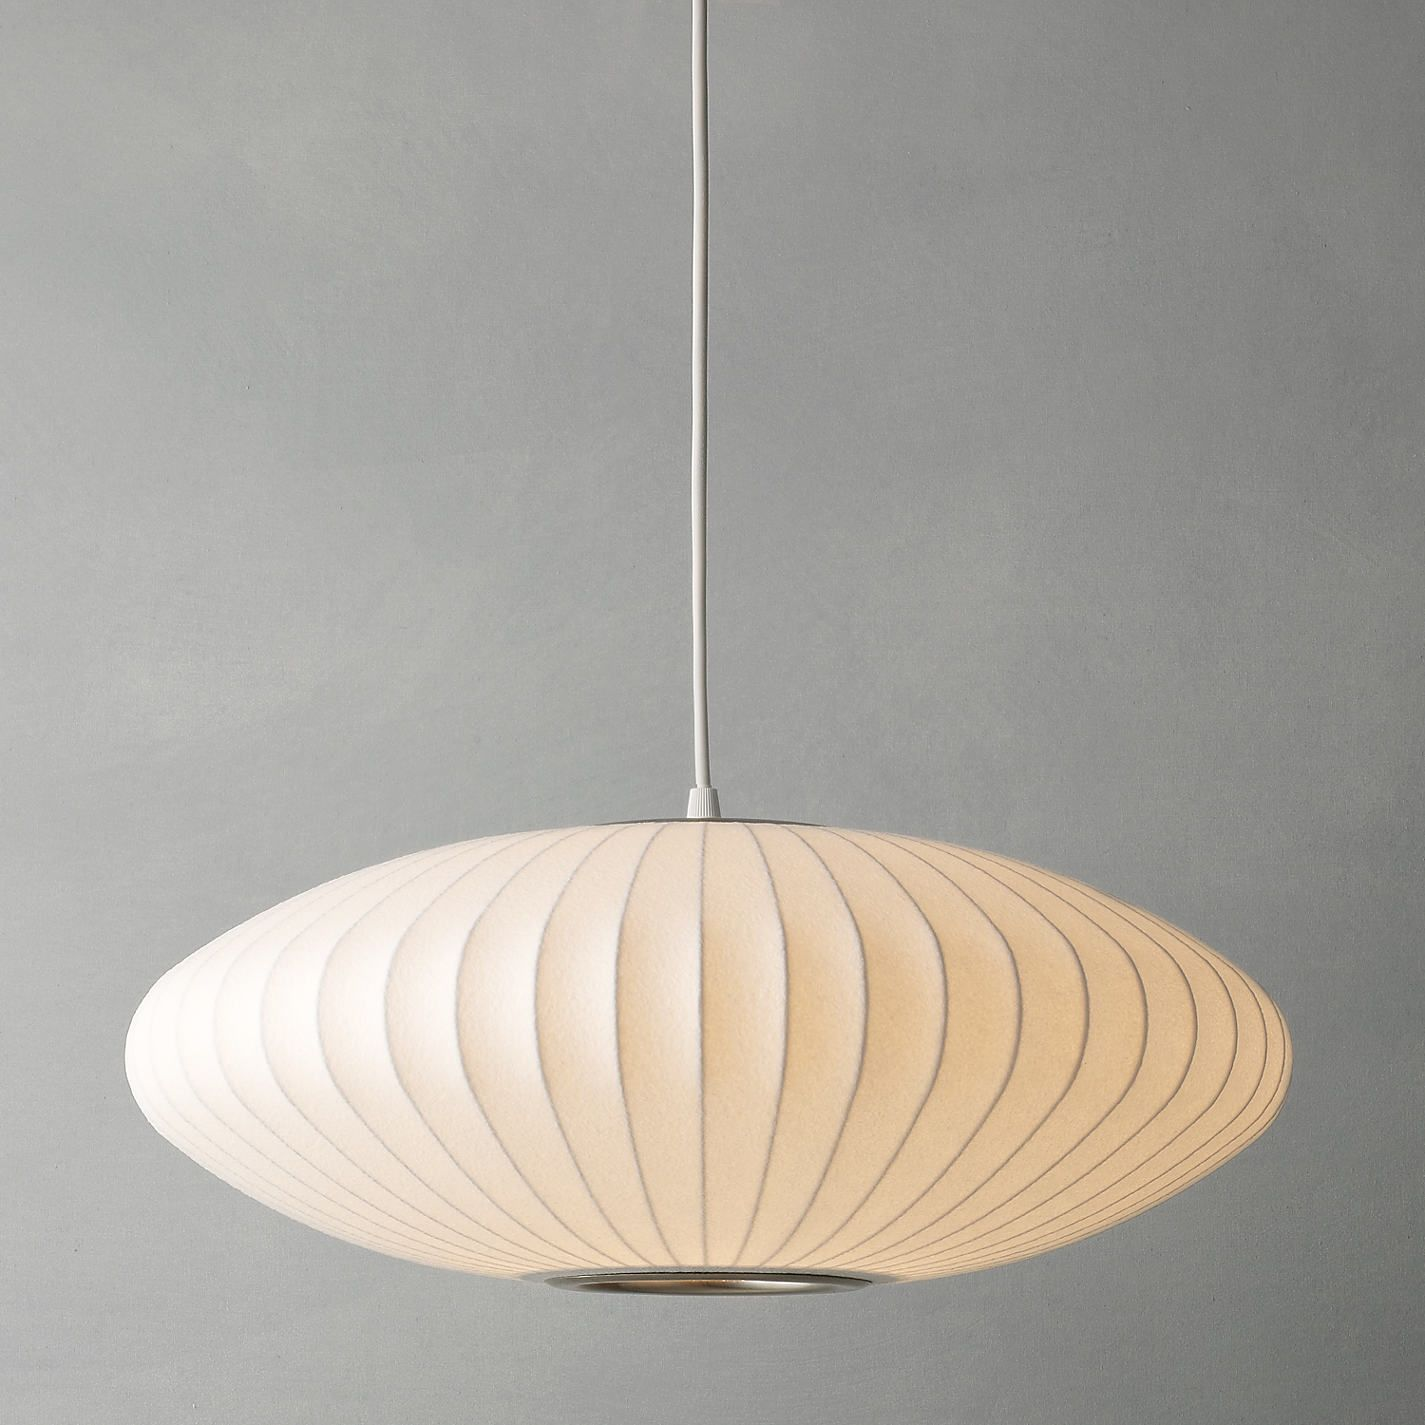 Buy George Nelson Bubble Saucer Ceiling Light, Medium From Our Ceiling  Lighting Range At John Lewis.